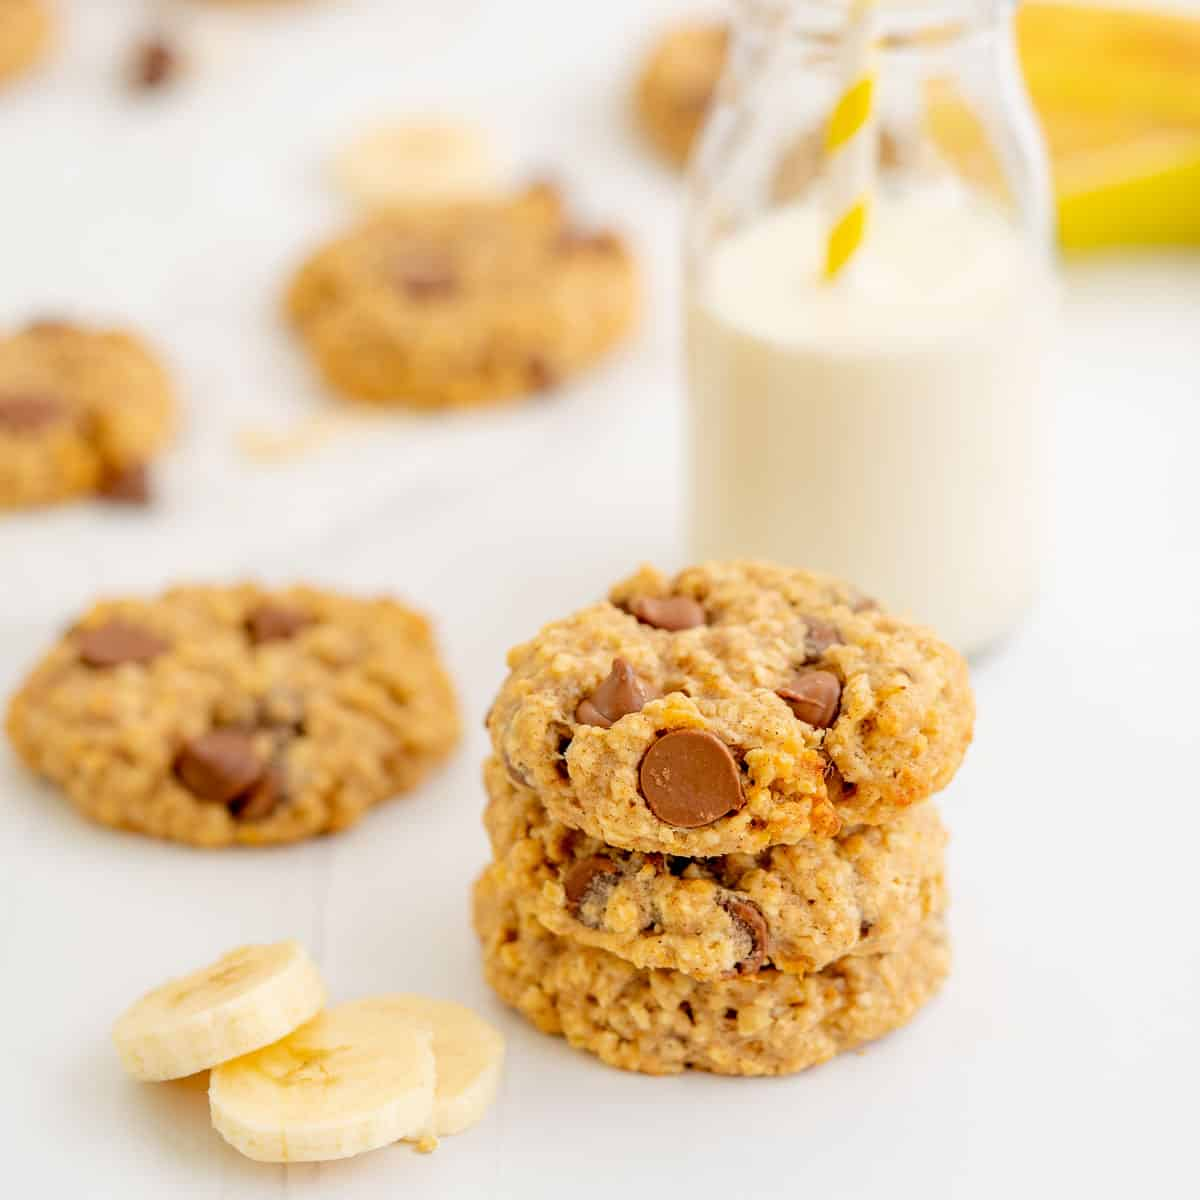 Three thick oat cookies stacked in a tower next to slices of banana.